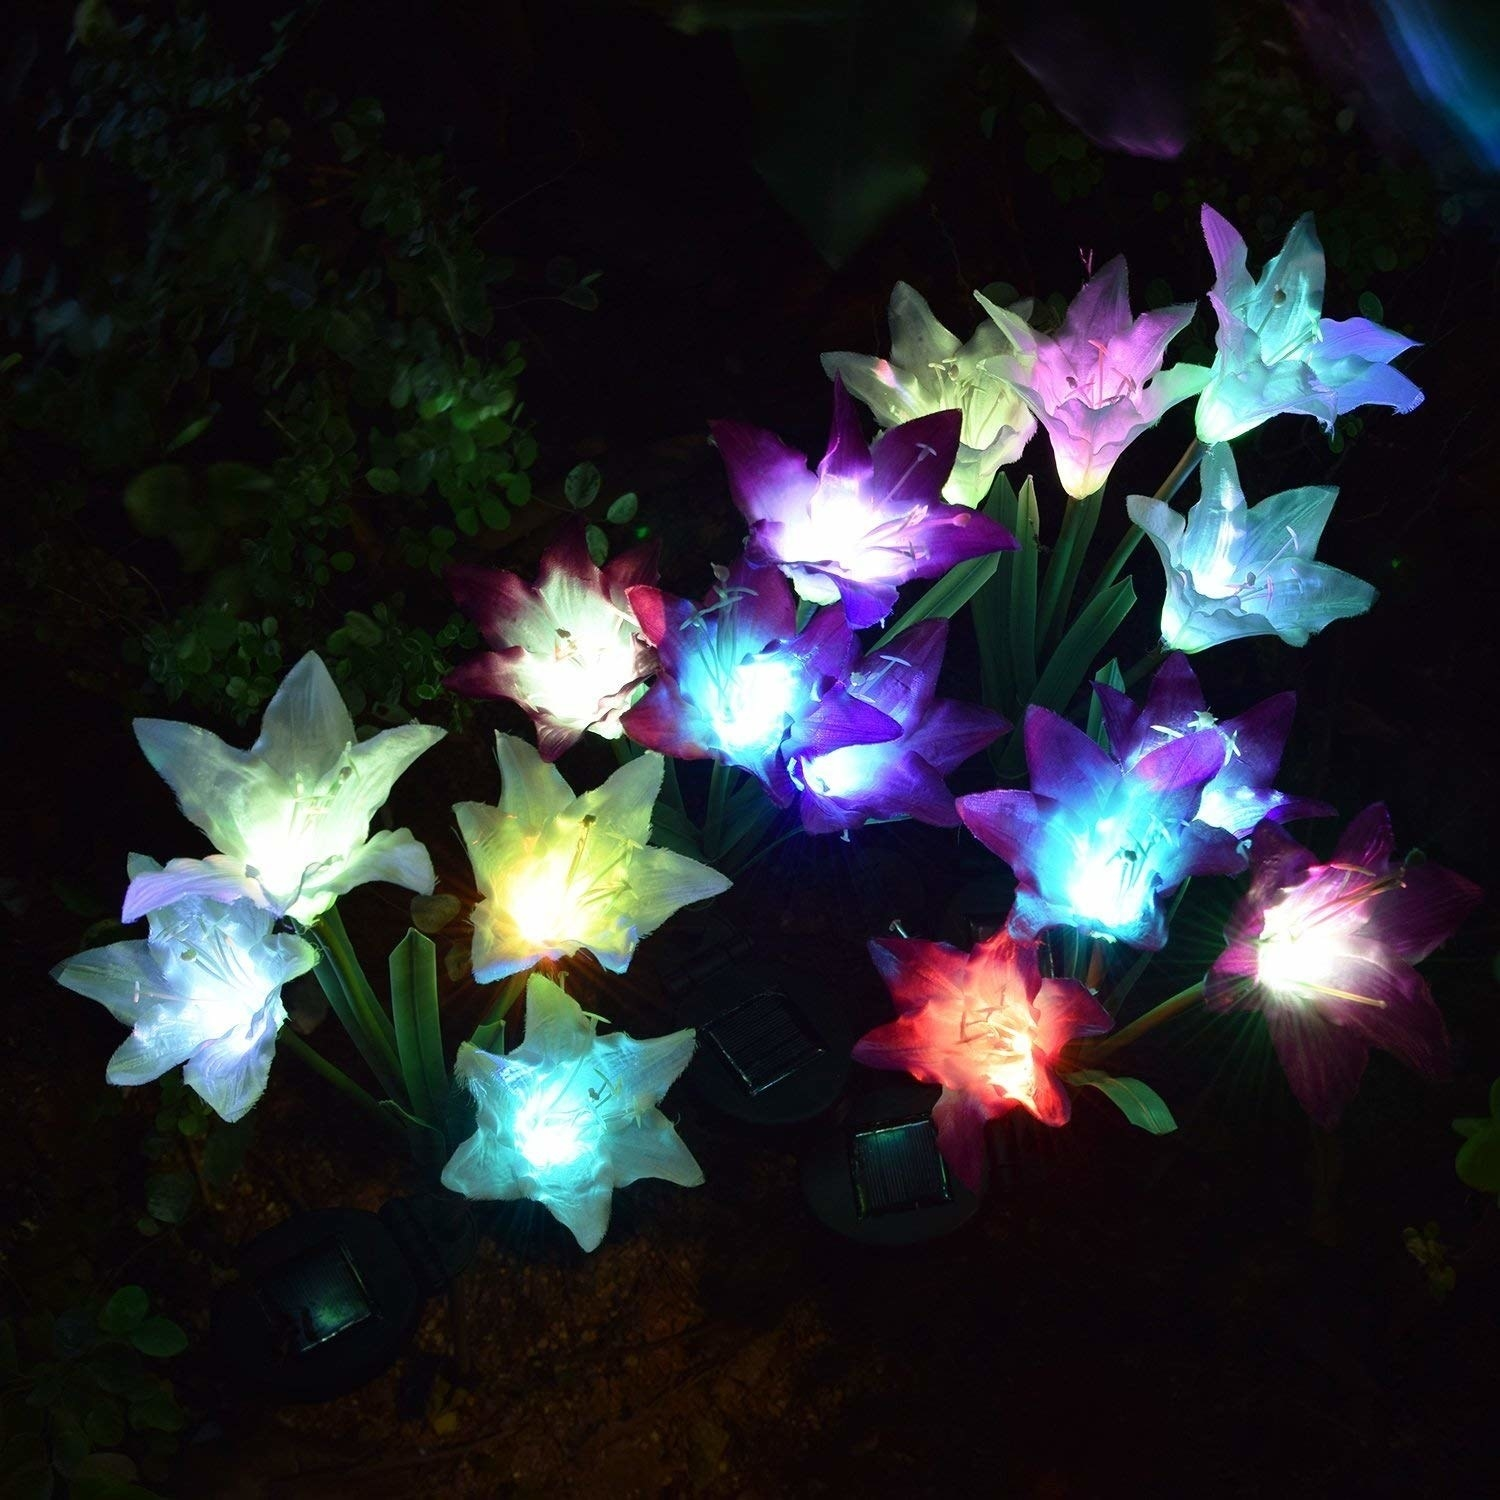 an array of light up flowers glowing at night